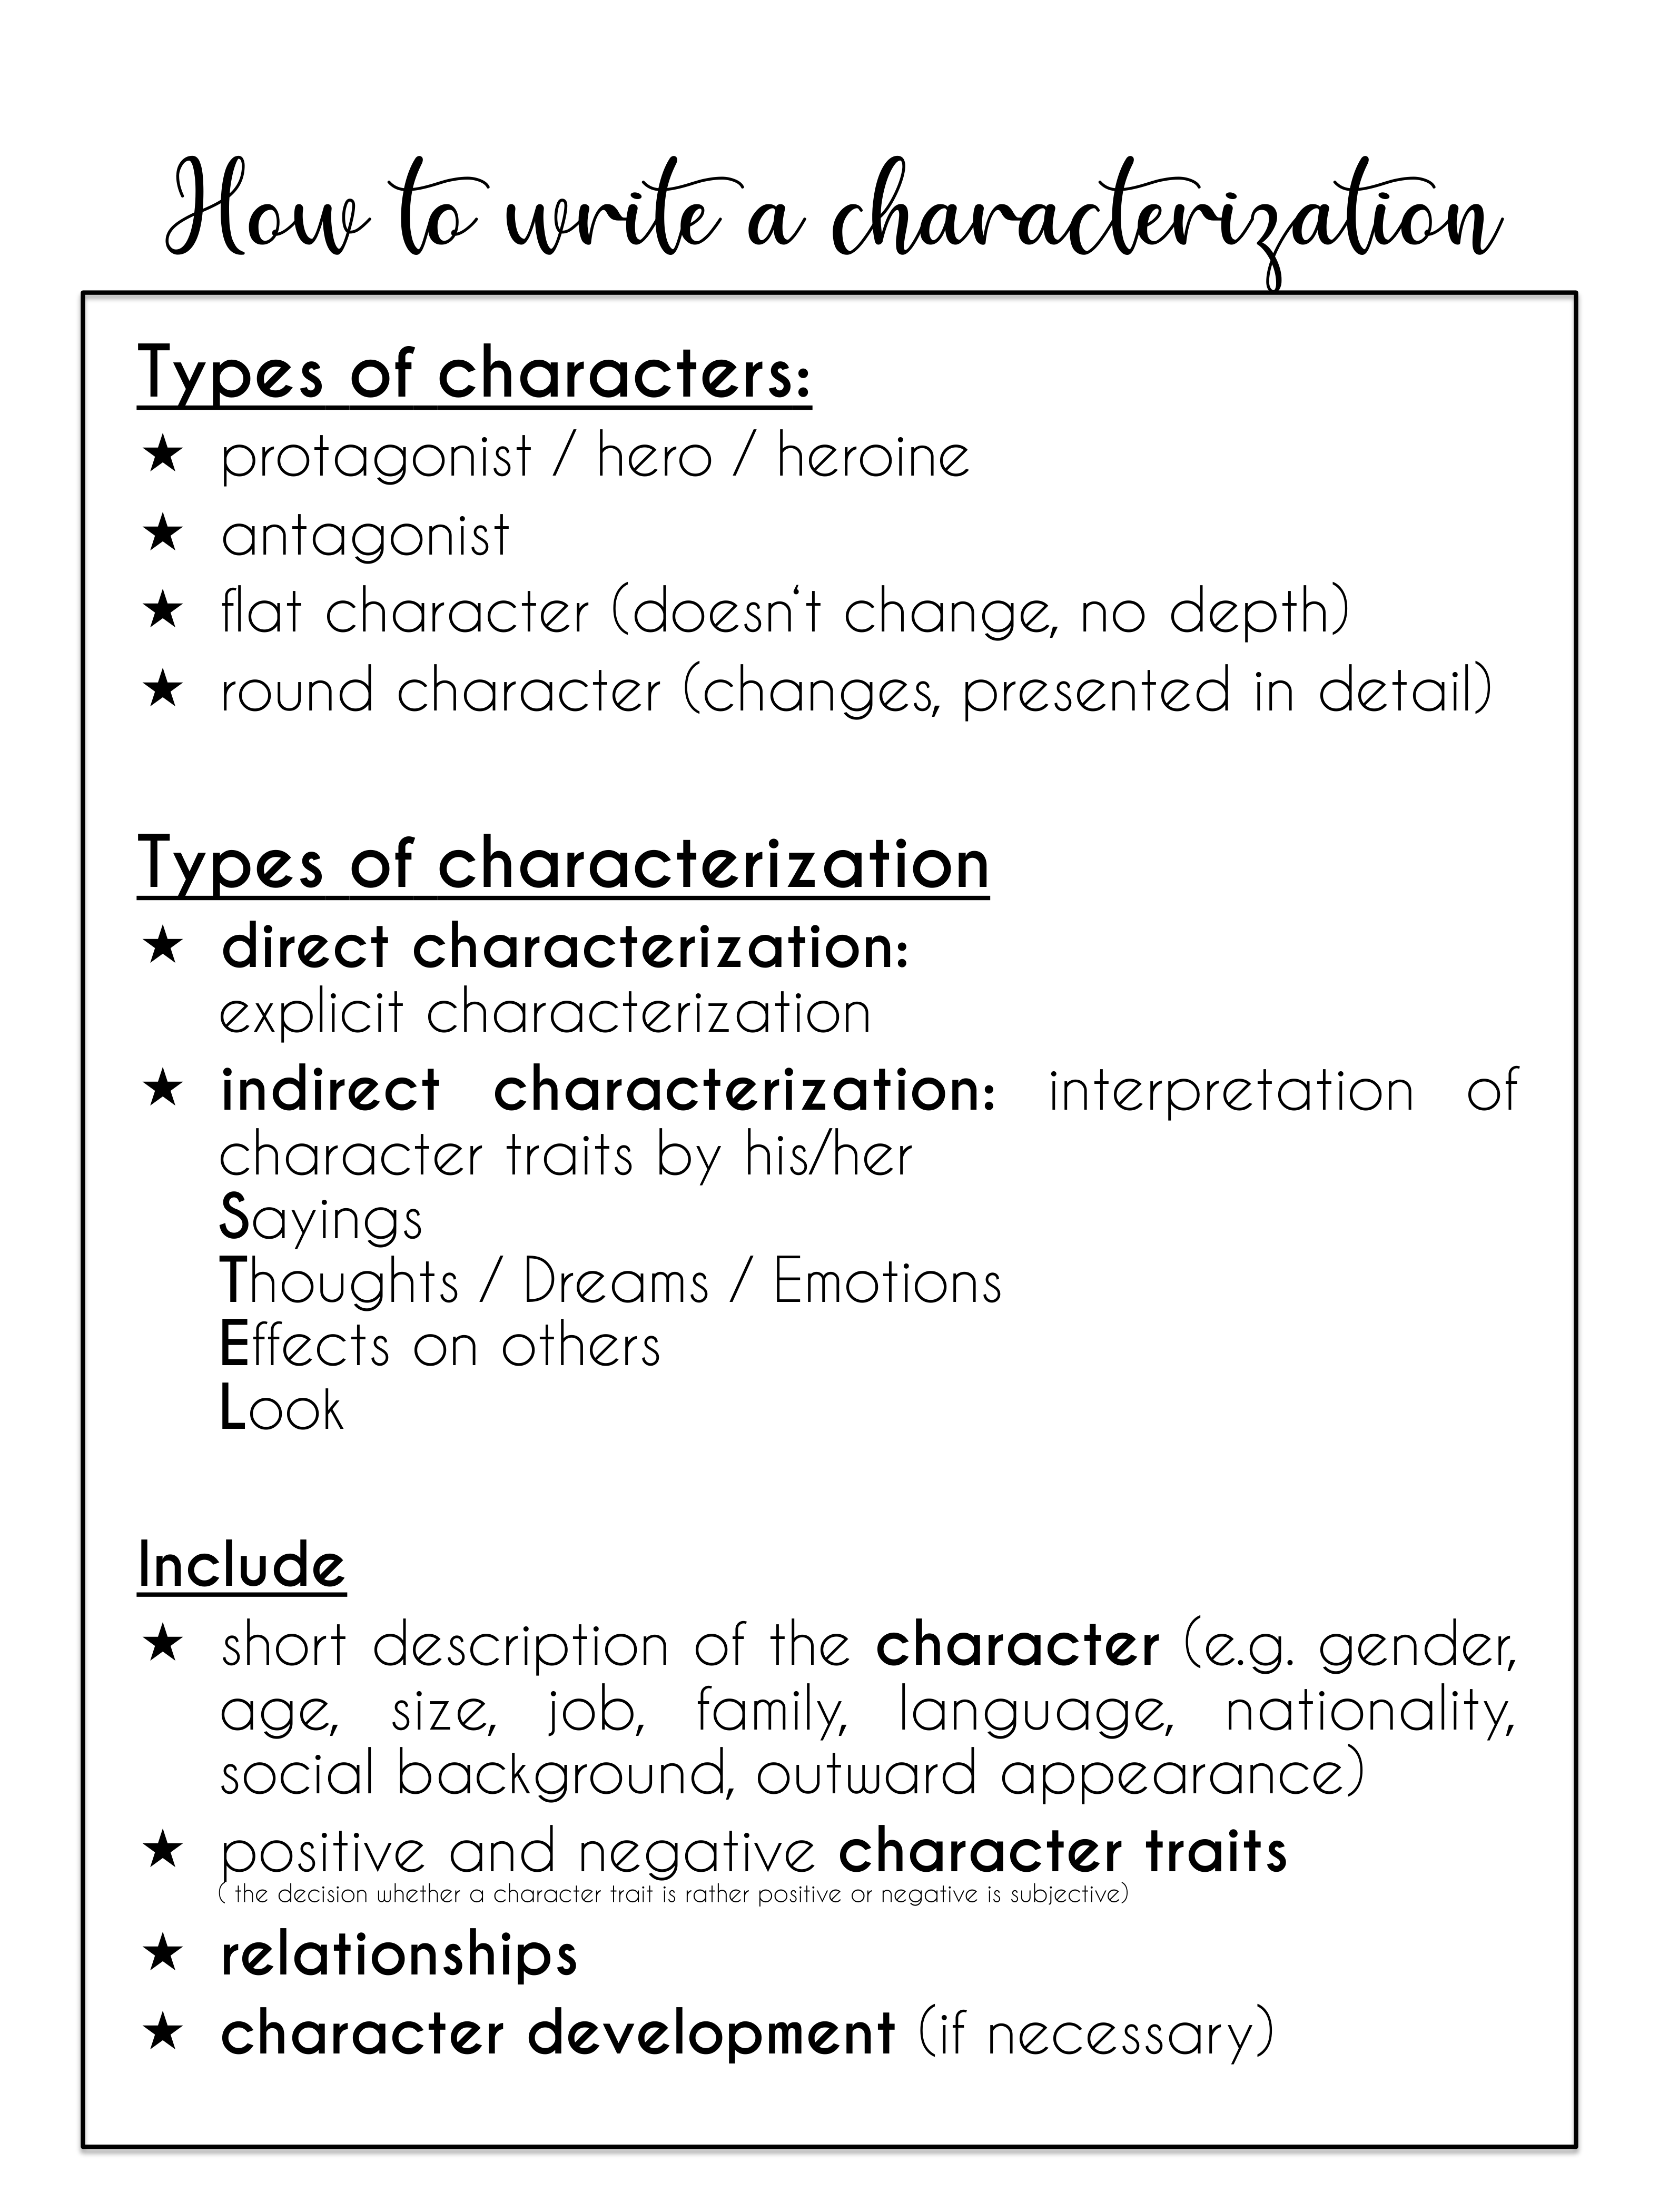 How to write a characterization characterization w/ useful phrases